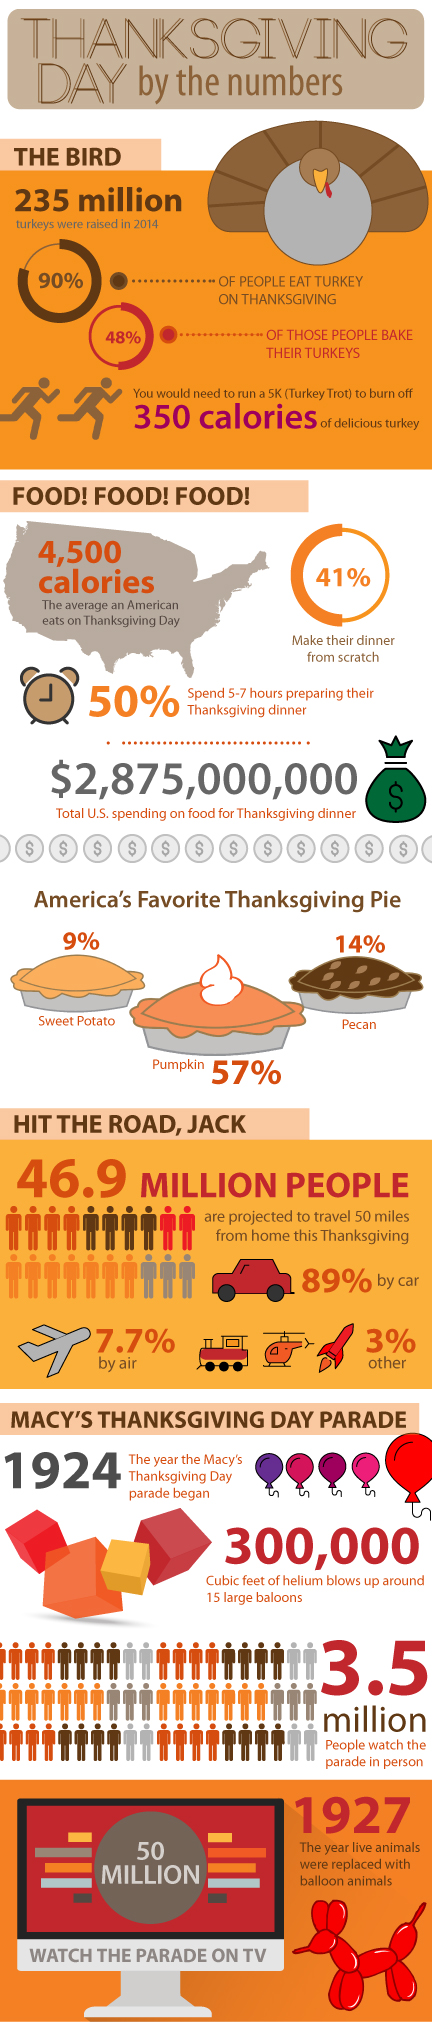 Thanksgiving-Day-infographic (2)